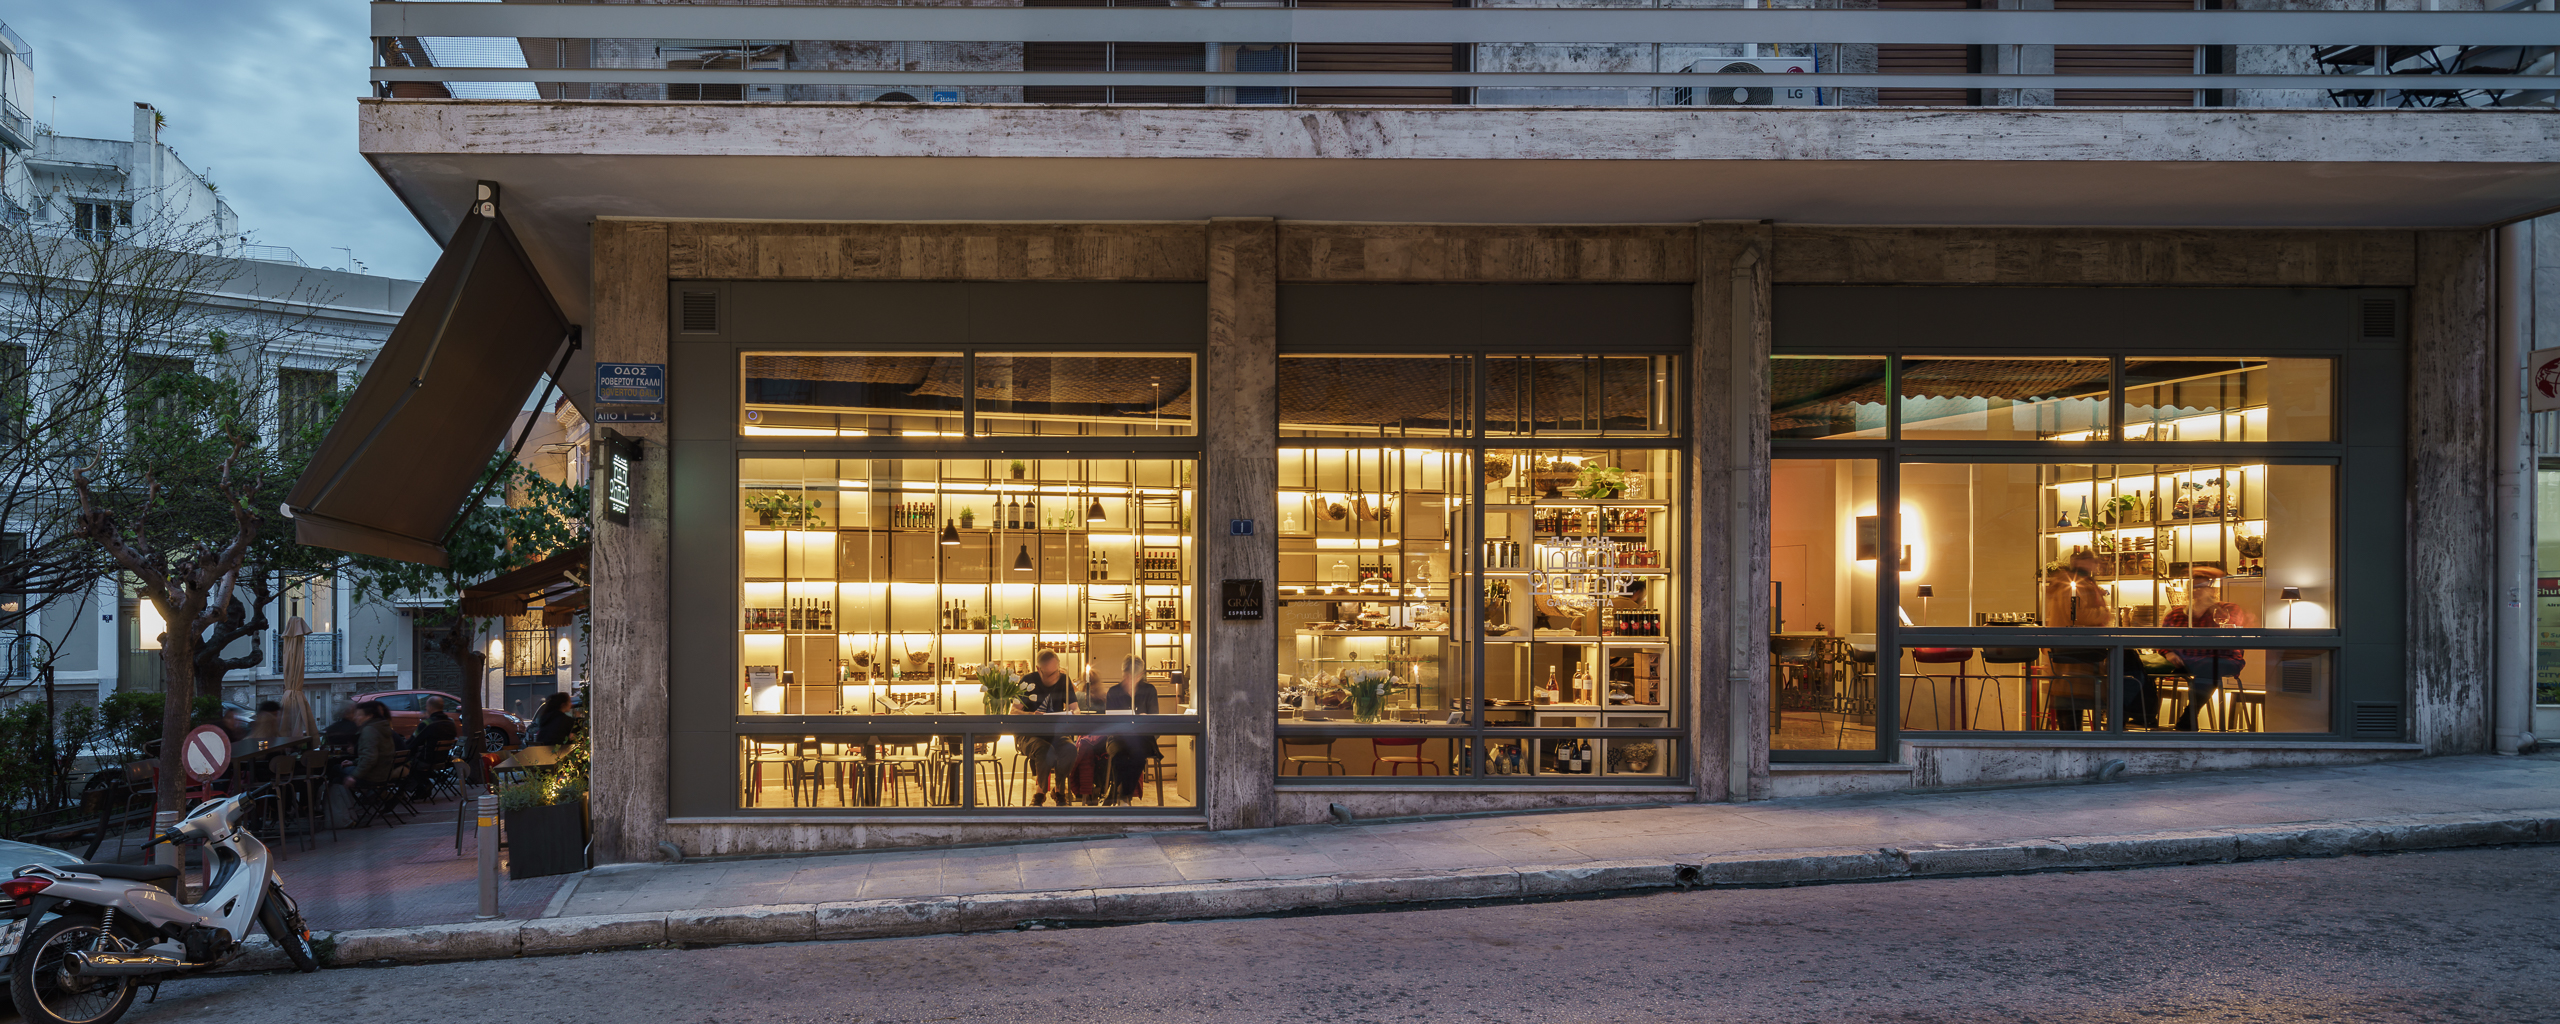 StavropoulouArchitects_Gargaretta_April2